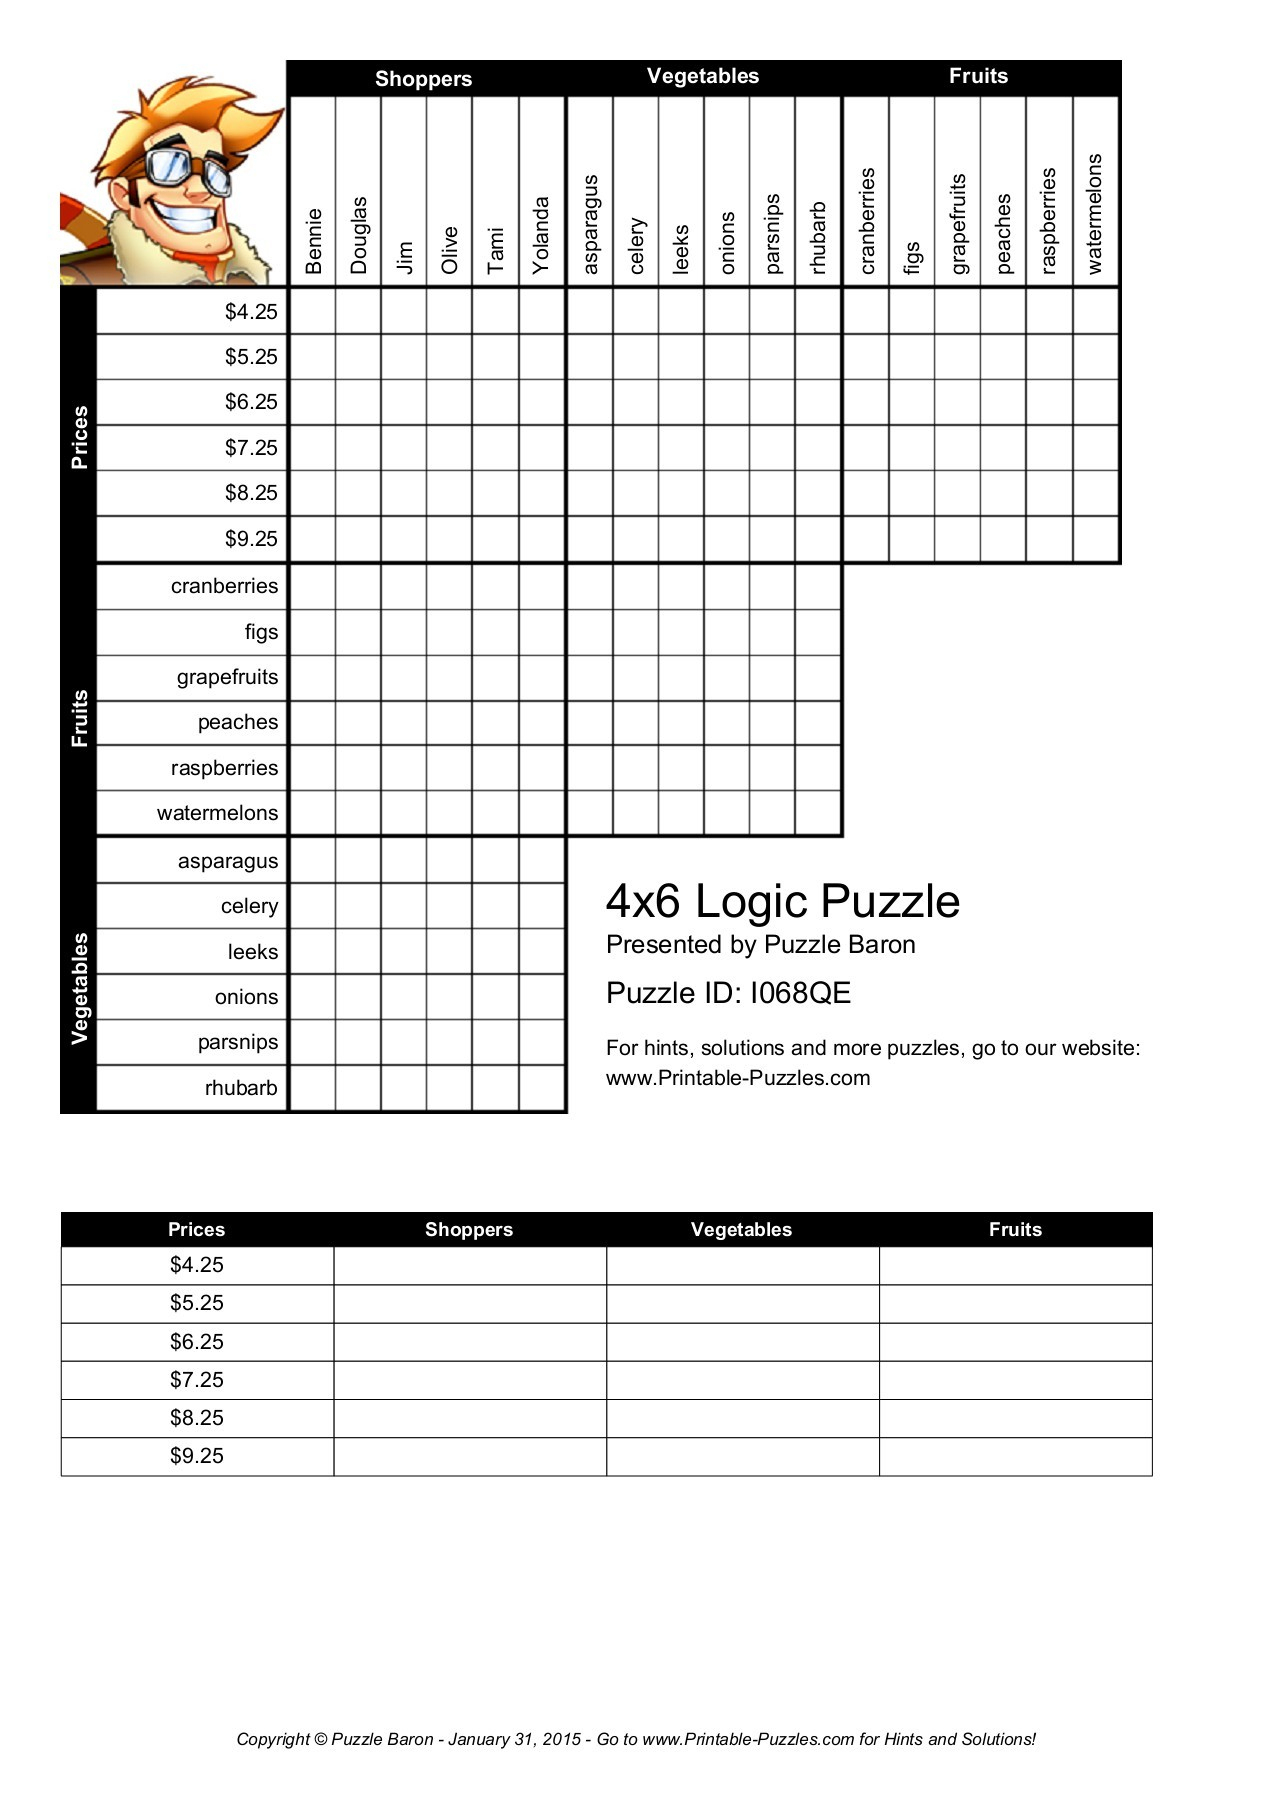 4X6 Logic Puzzle - Logic Puzzles - Play Online Or Print  Pages 1 - Printable Puzzles Puzzle Baron